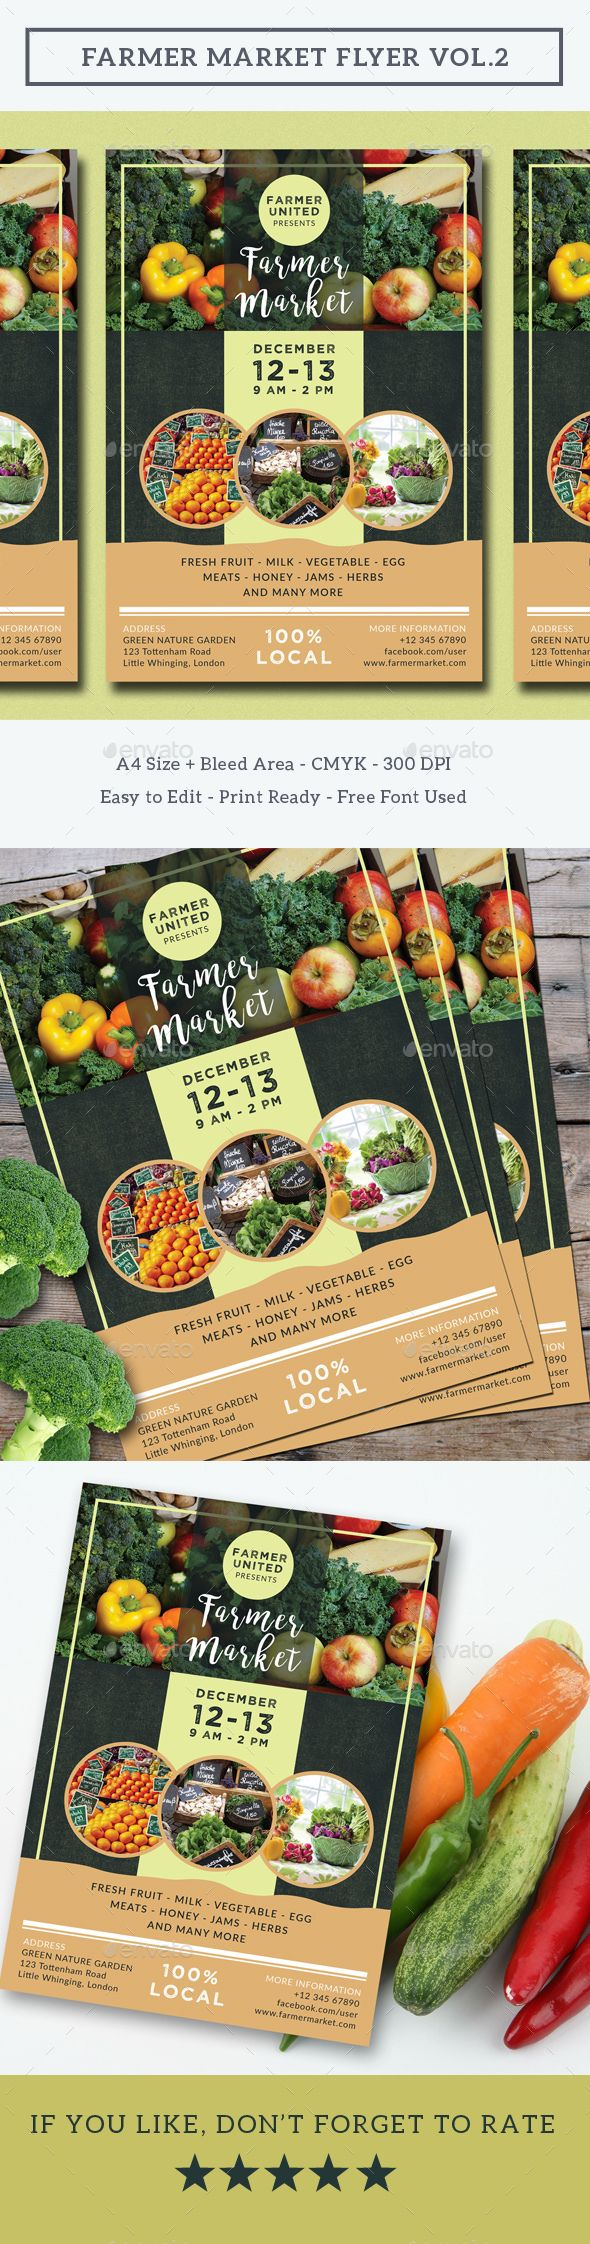 Farmer Market Flyer Vol.2 — Photoshop PSD #organic #natural • Download ➝ https://graphicriver.net/item/farmer-market-flyer-vol2/19118961?ref=pxcr